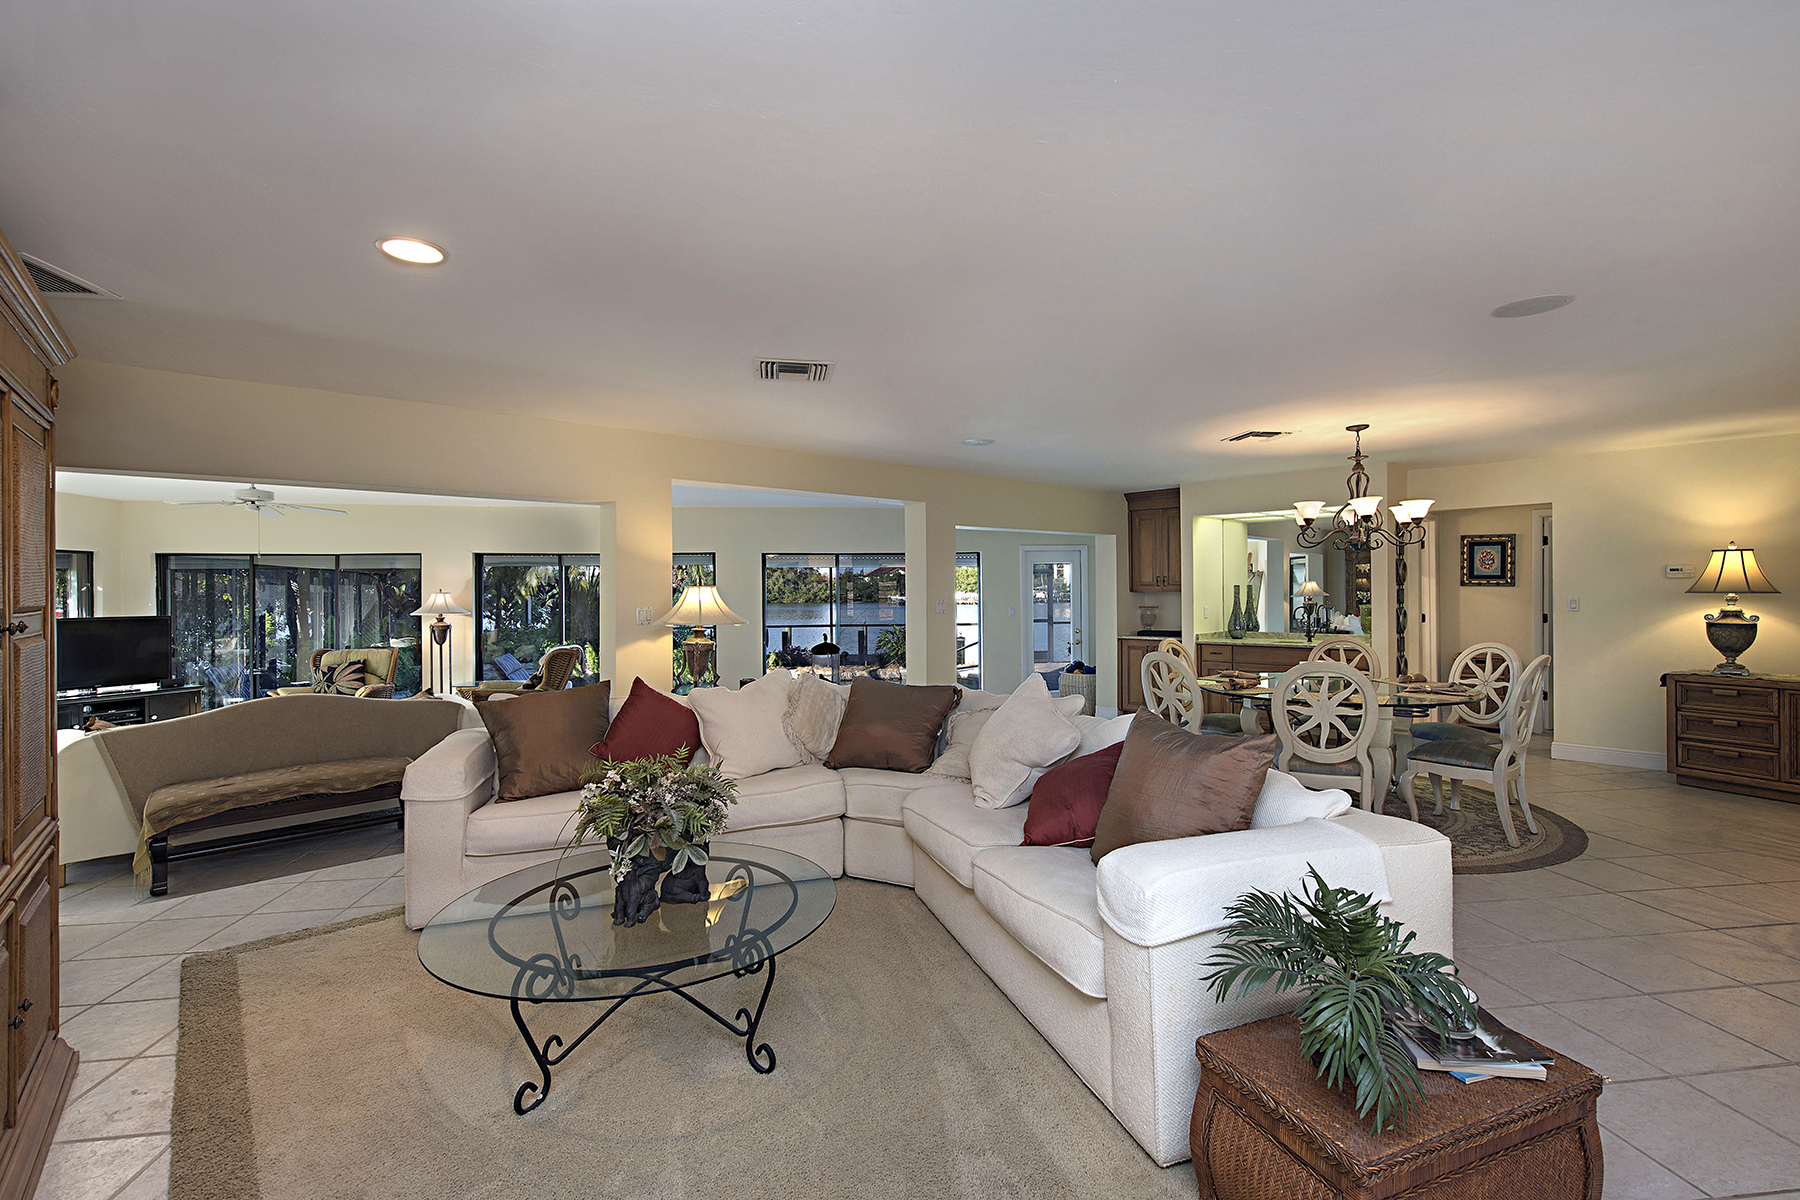 Additional photo for property listing at LITTLE HICKORY SHORES 243  6th St  W,  Bonita Springs, Florida 34134 United States